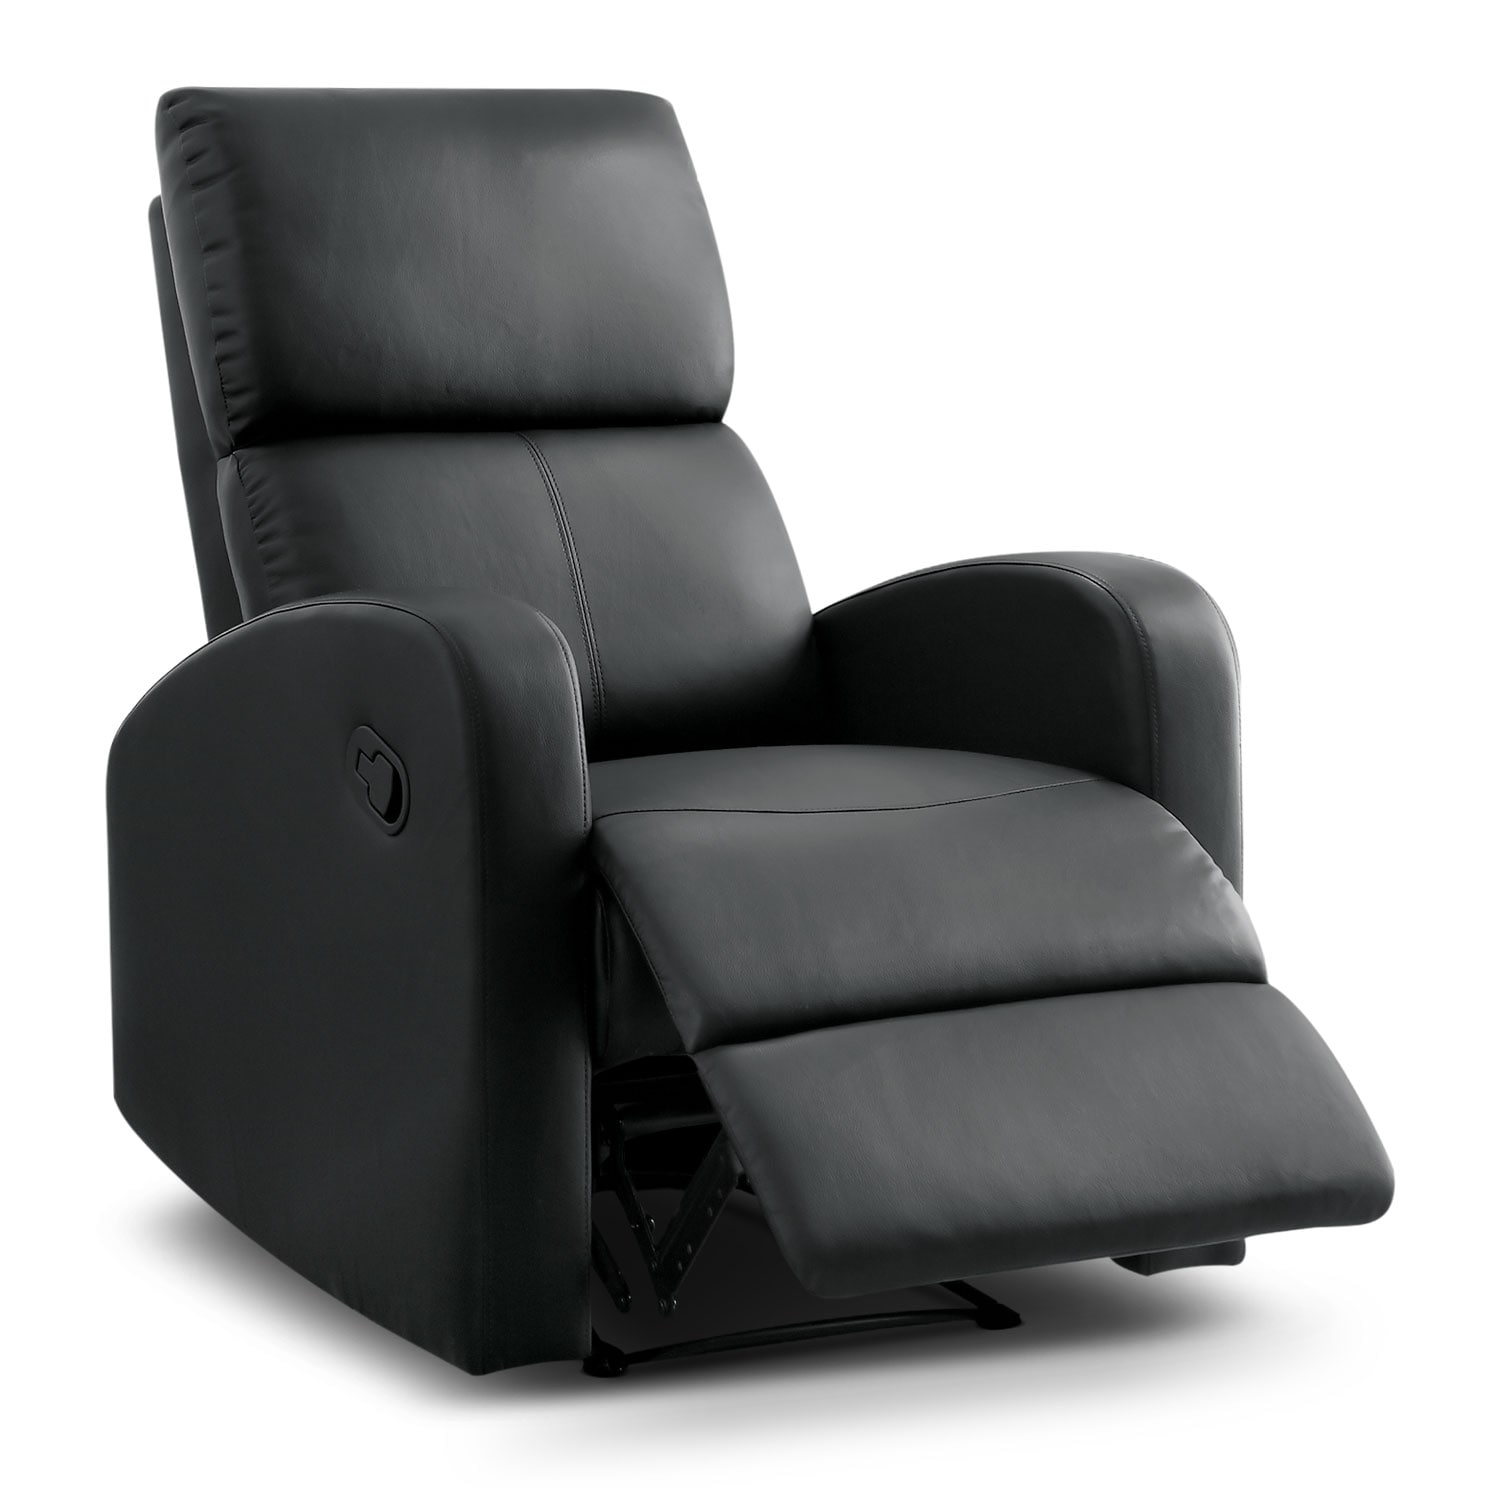 Living Room Furniture - Benning Recliner - Black